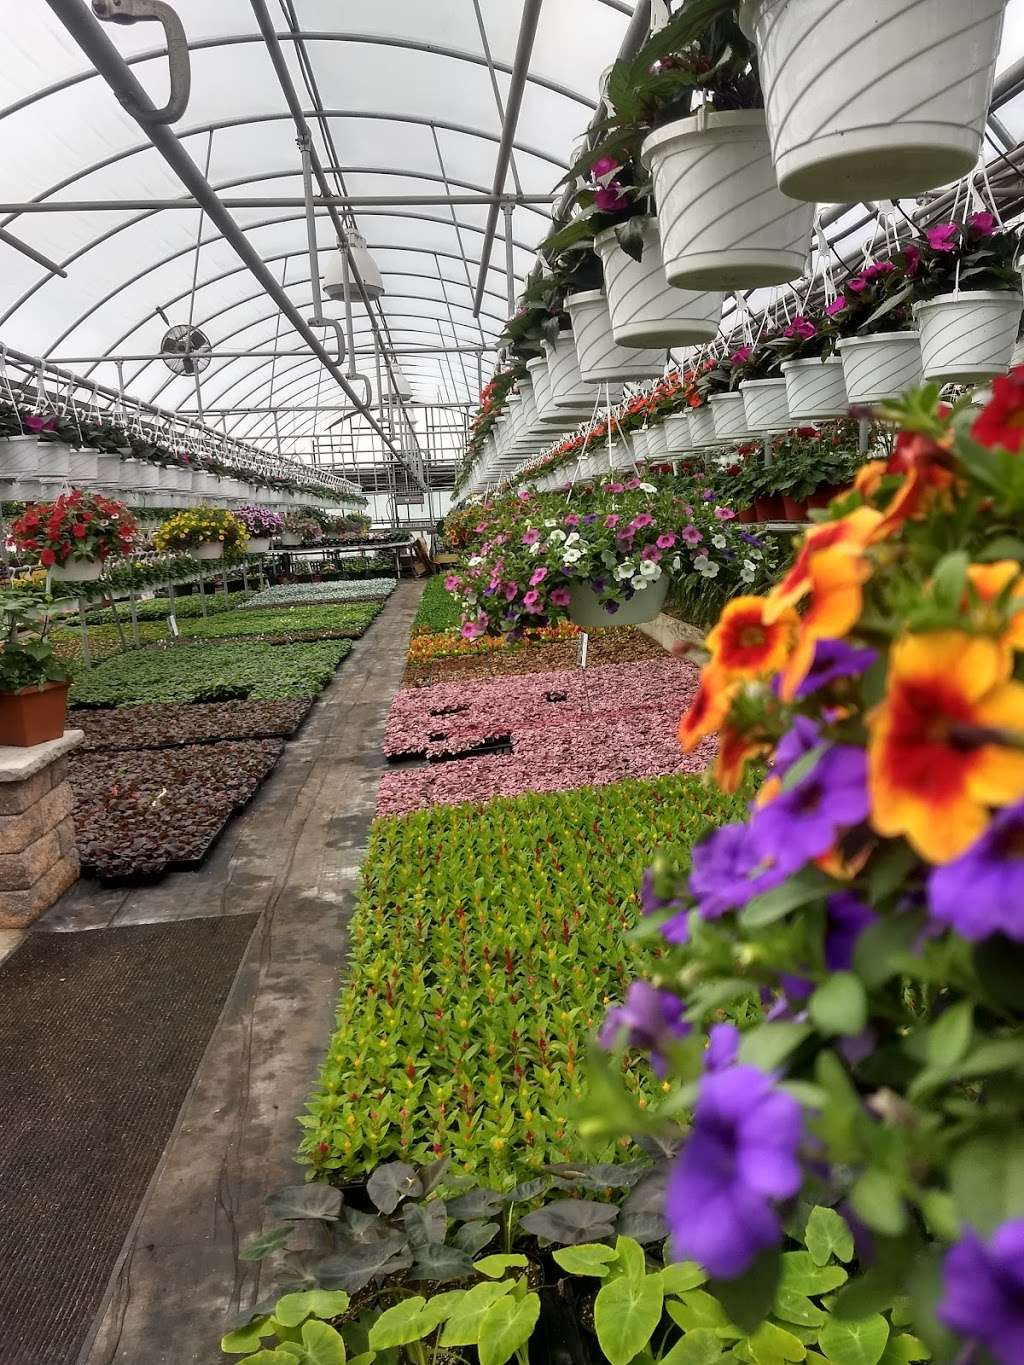 Schulmeister Greenhouses - store  | Photo 7 of 10 | Address: 103 Spring Hill Rd, Matawan, NJ 07747, USA | Phone: (732) 721-6829